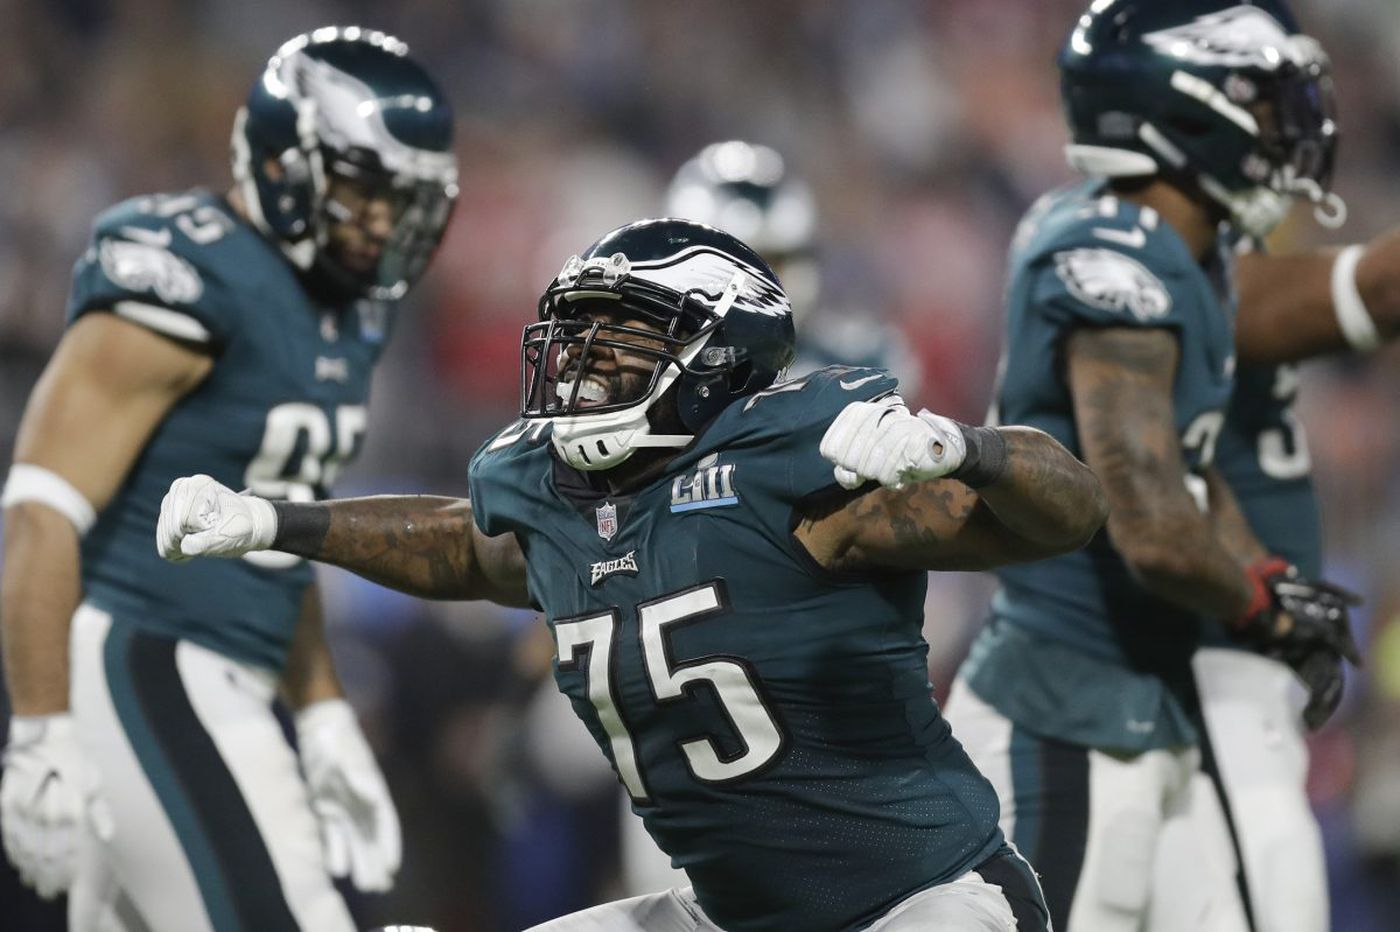 What should the Eagles do about Vinny Curry? | Eagles offseason preview